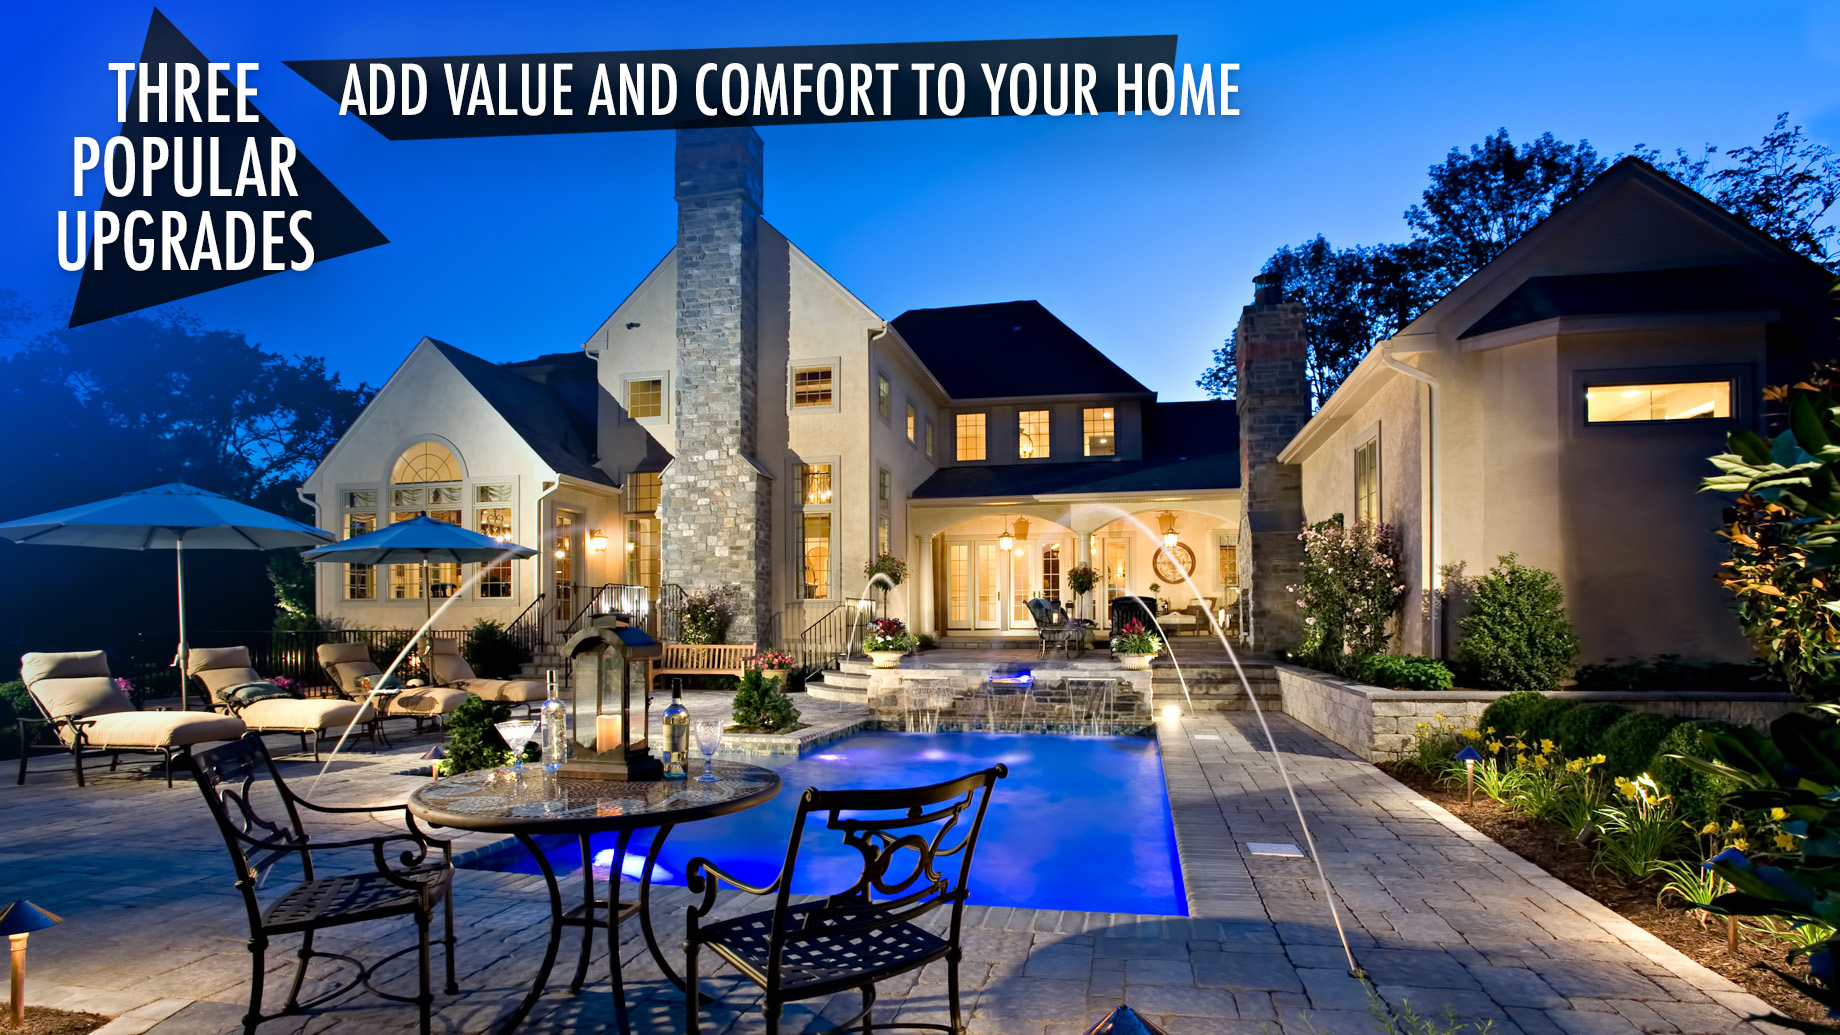 3 Por Upgrades That Add Value And Comfort To Your Home The